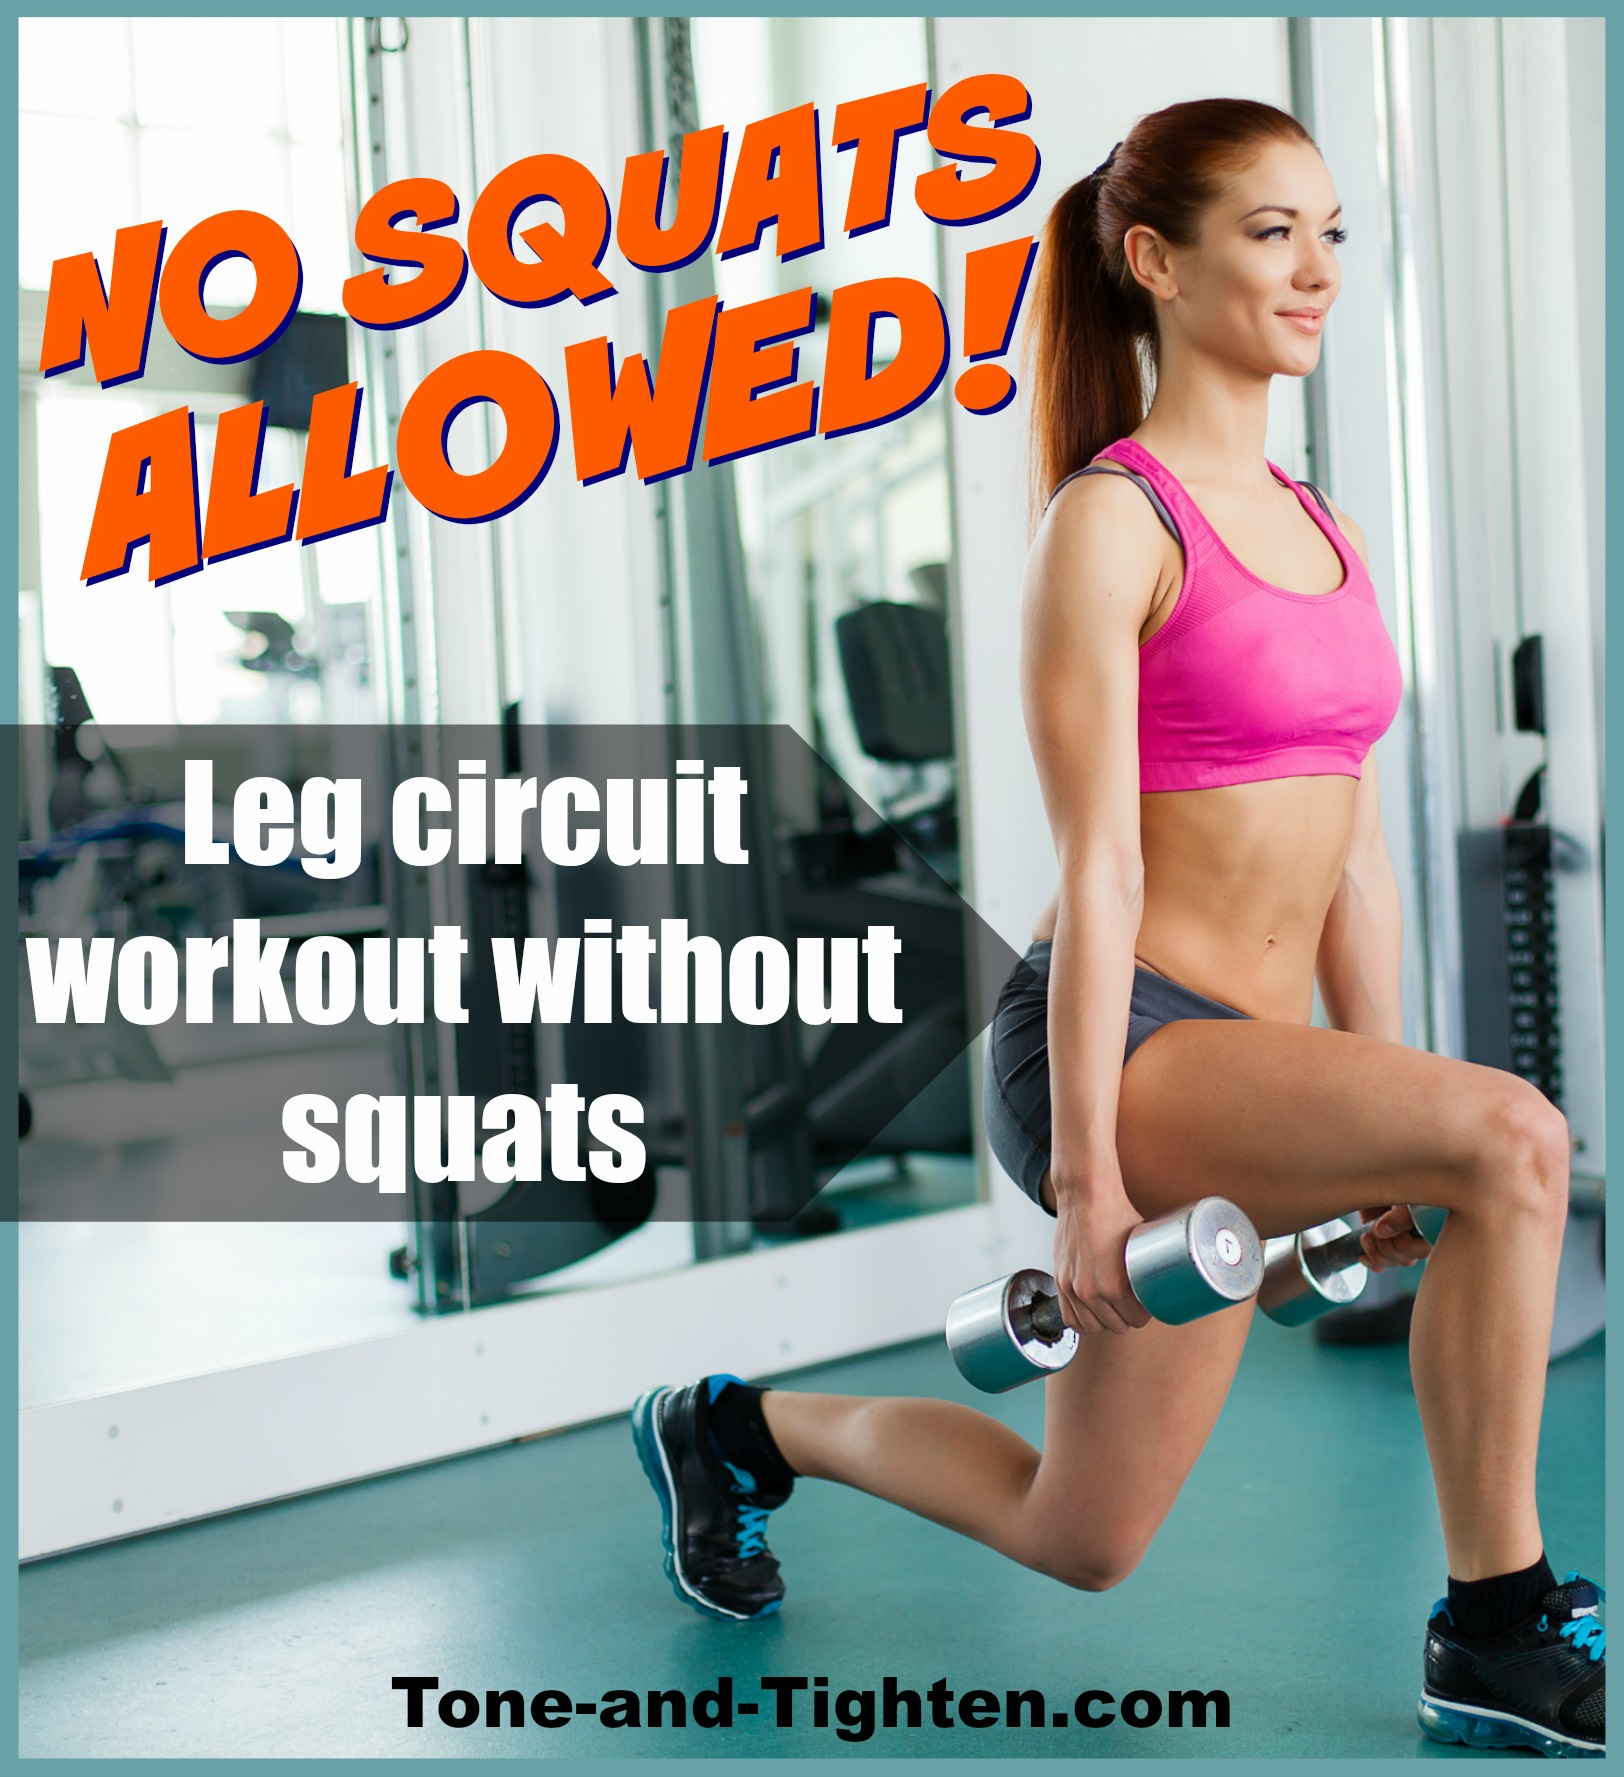 Gym Leg Workout Specifically For Women To Shape Quads Hamstrings And Glutes Don